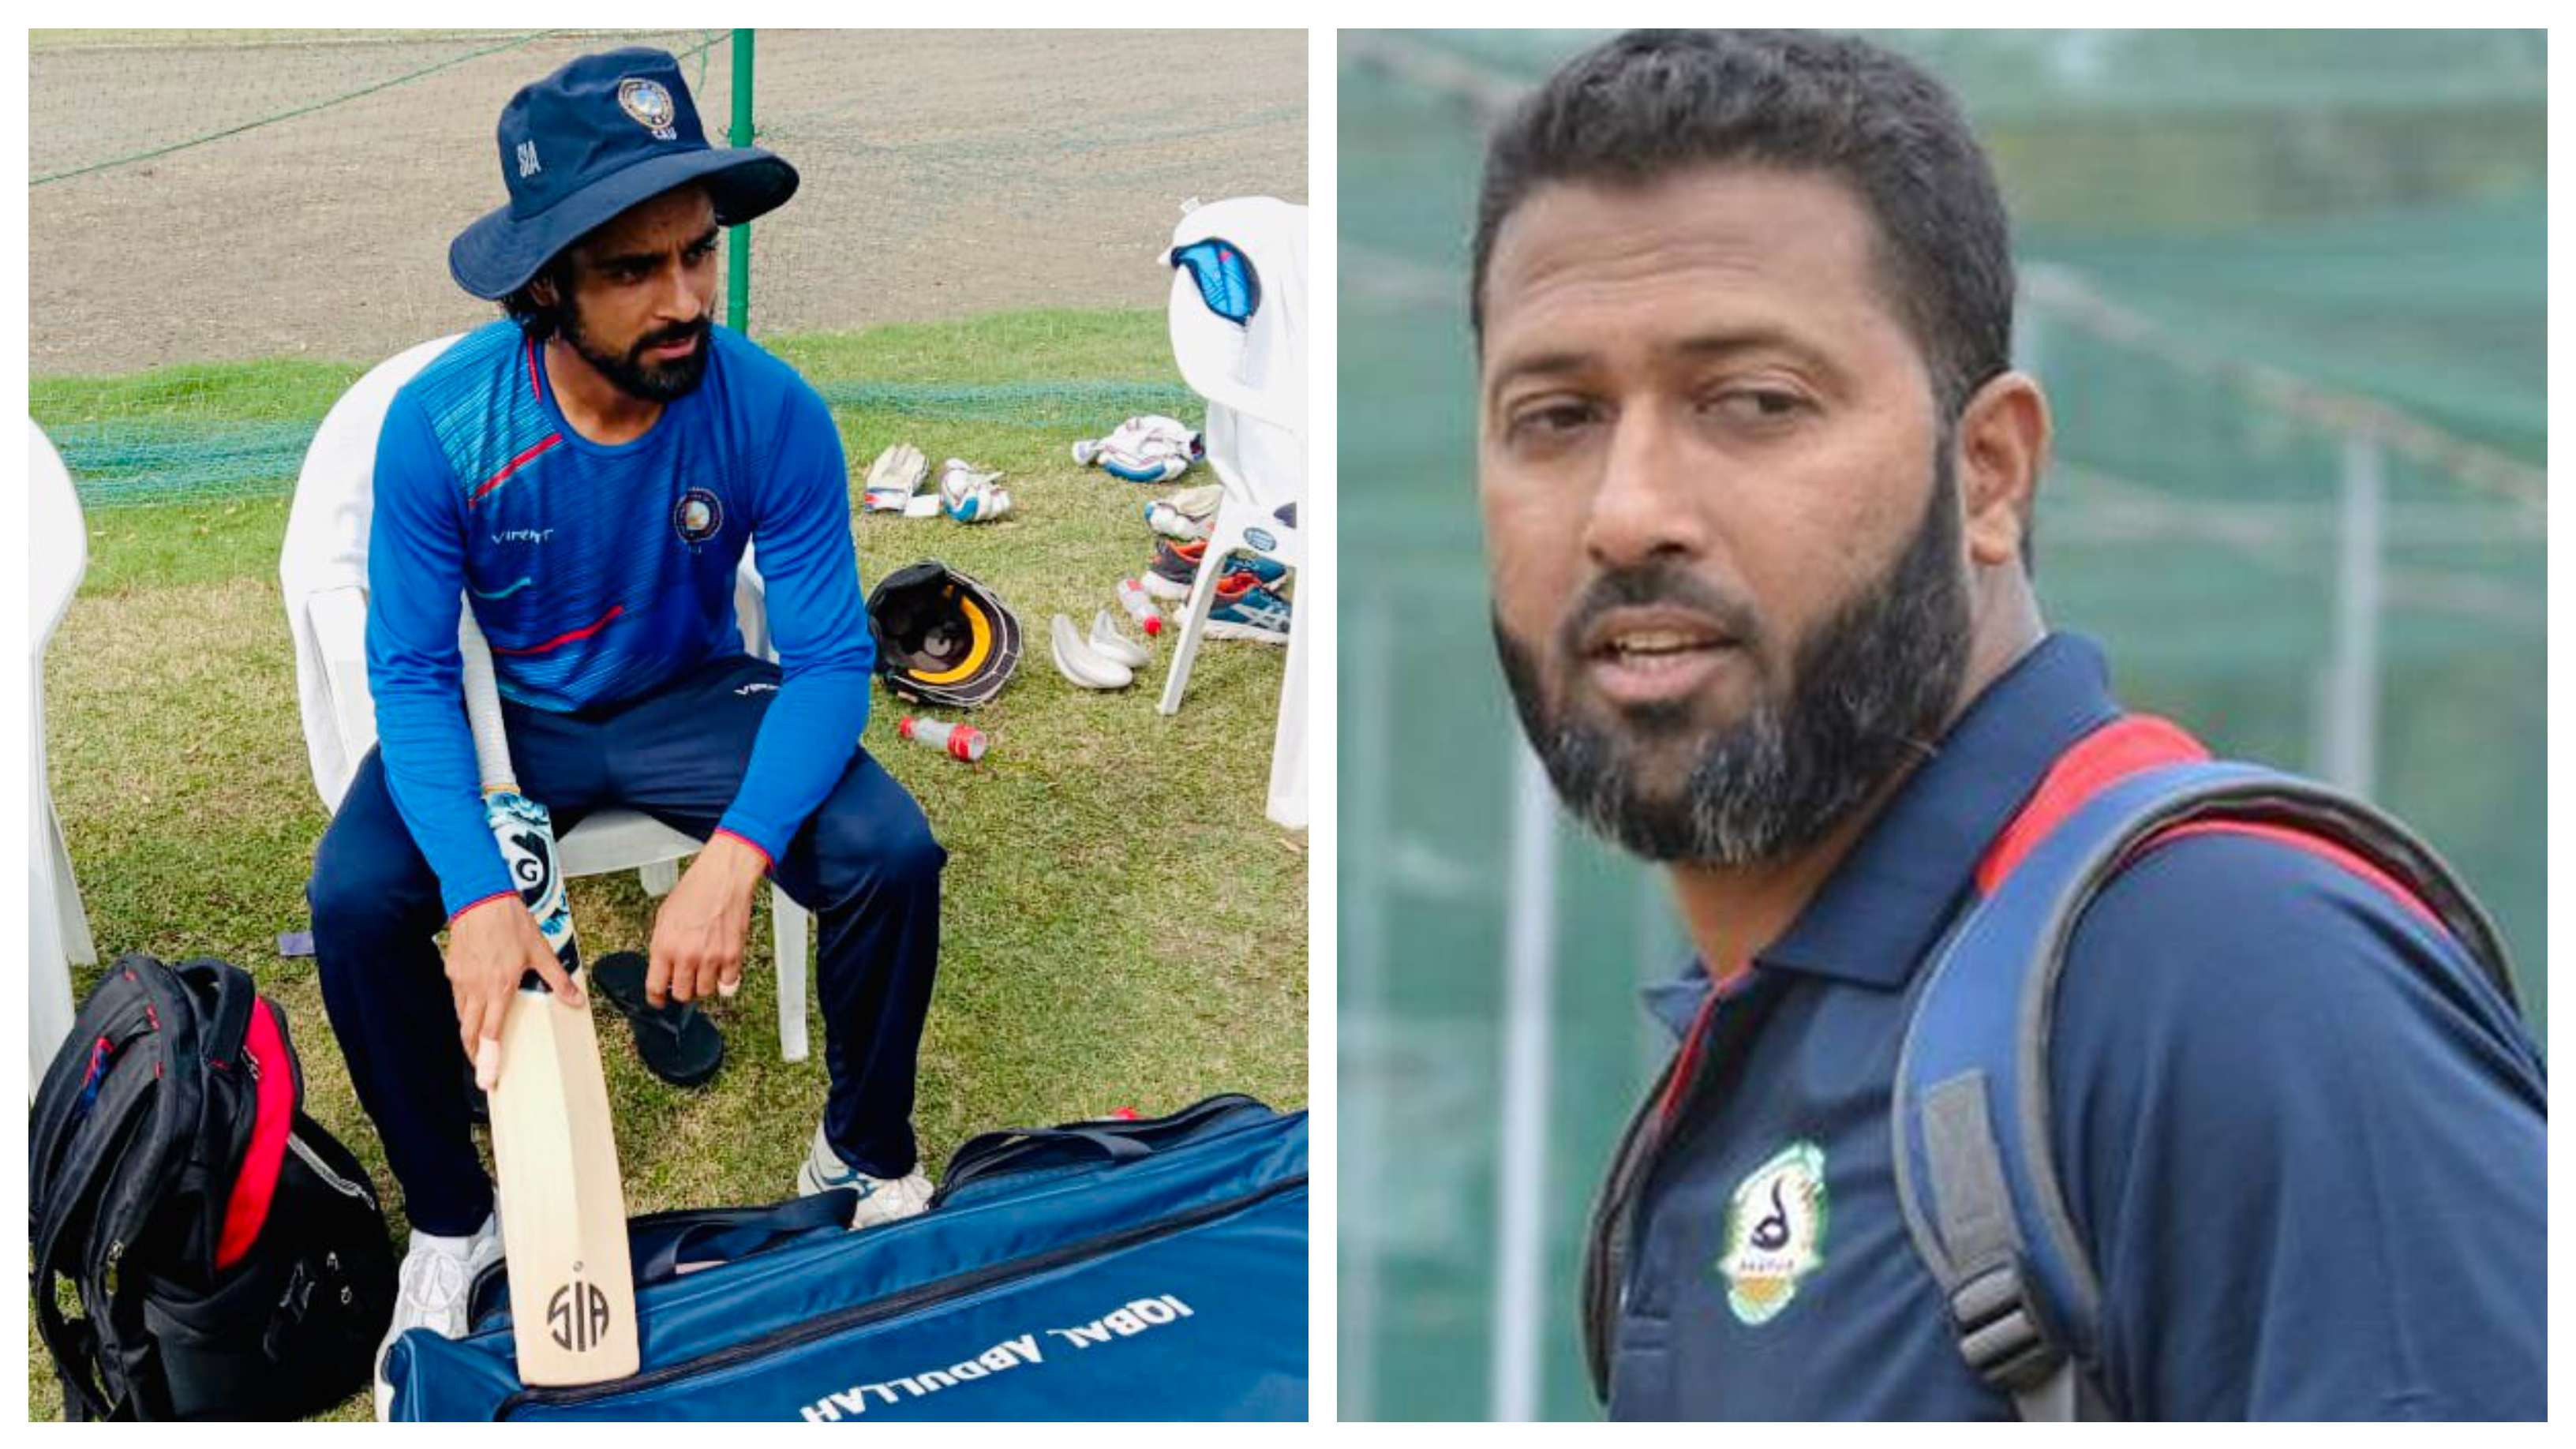 Iqbal Abdullah comes in support of Wasim Jaffer; says team manager gave permission for maulvi in dressing room